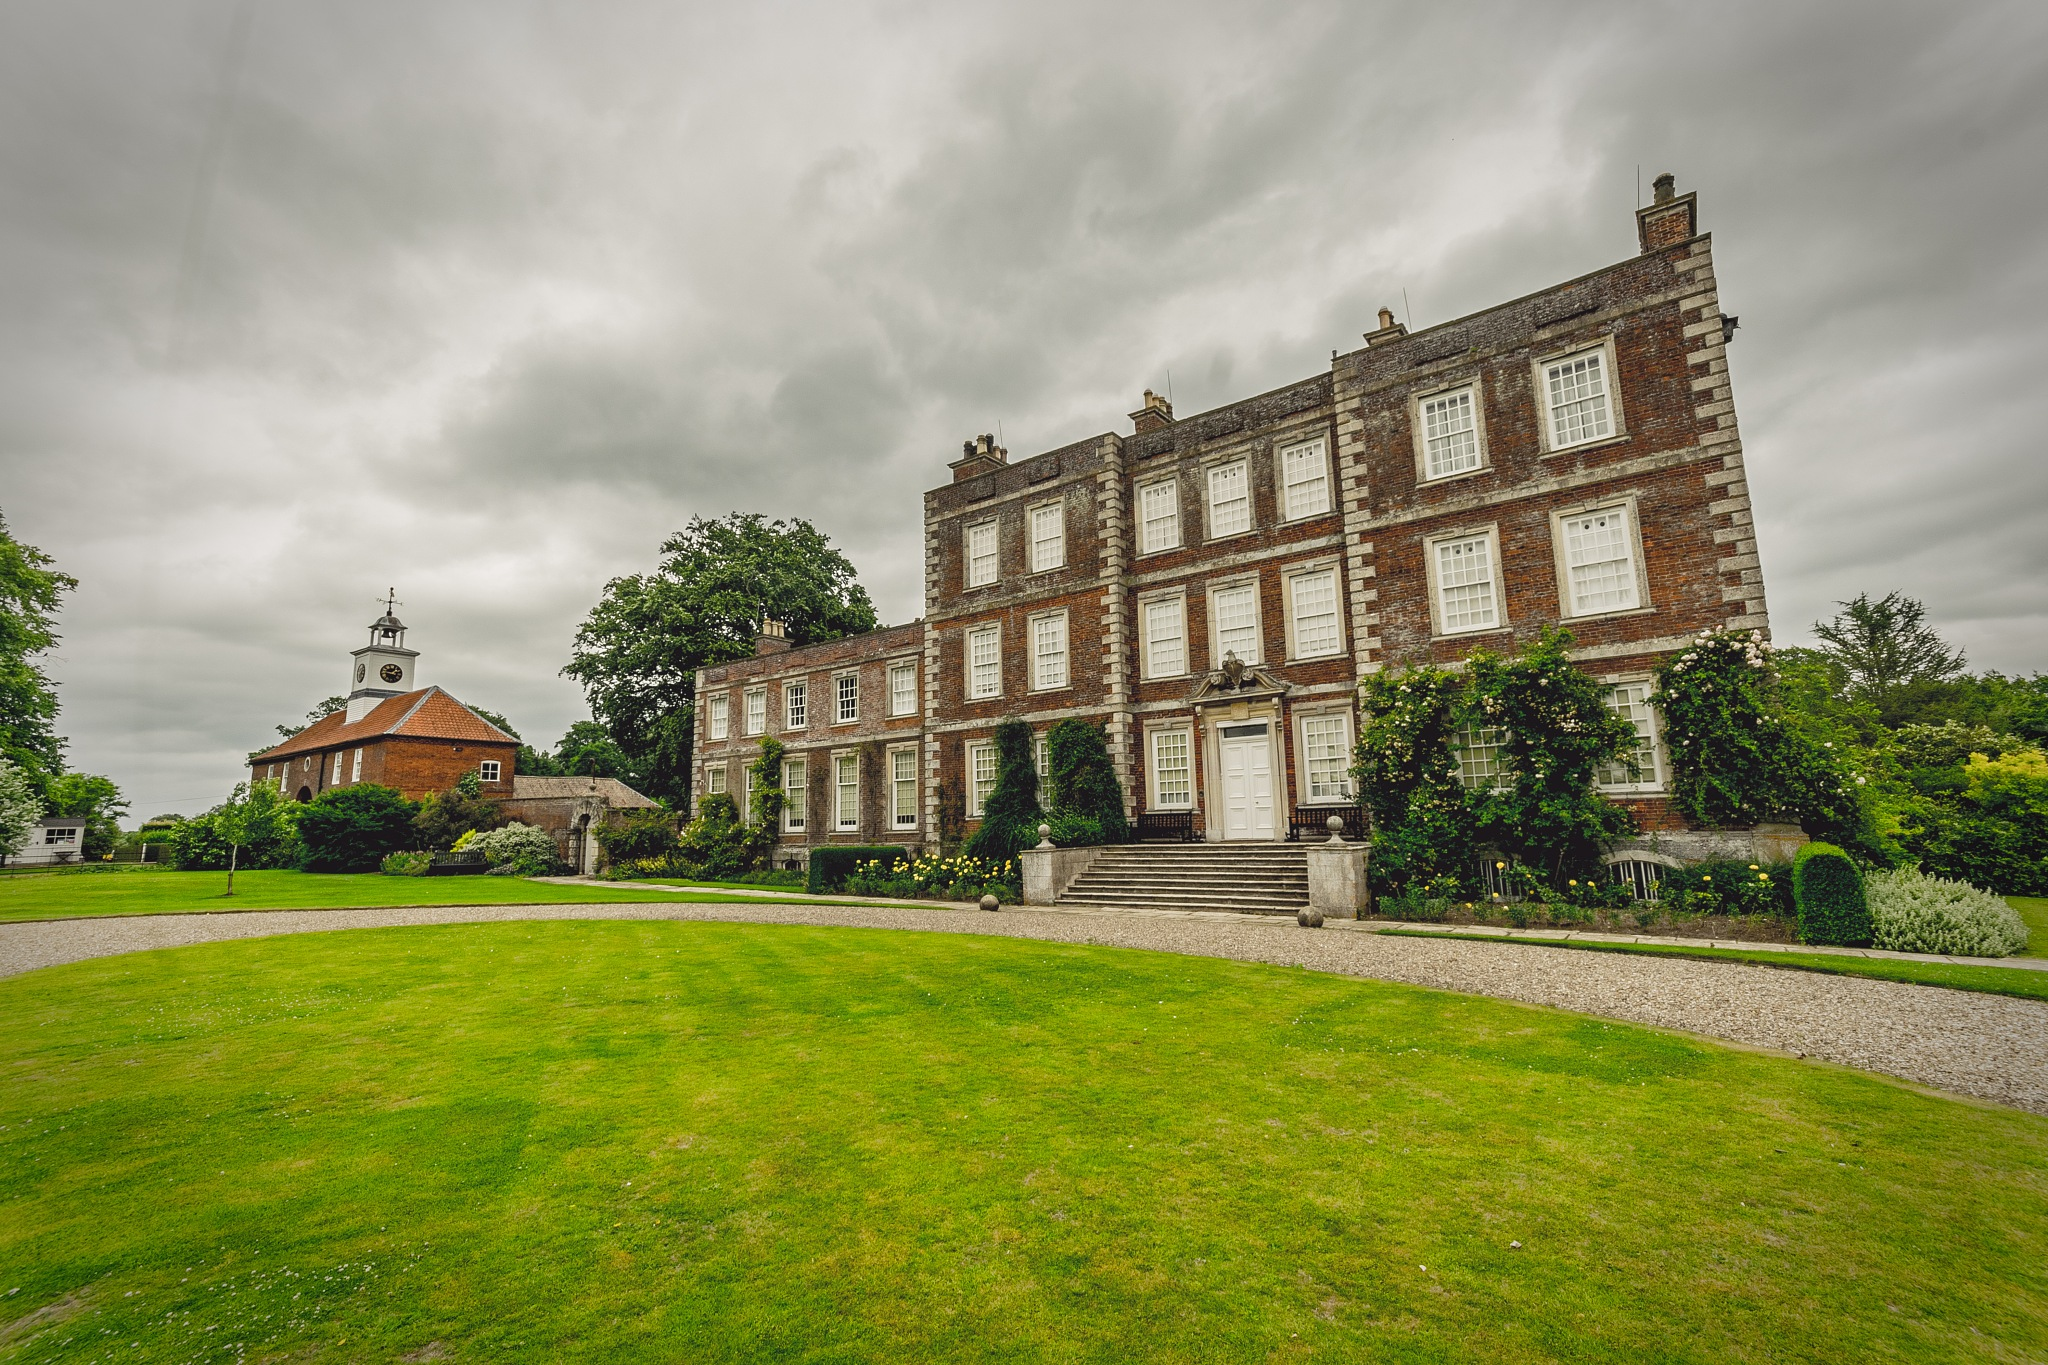 Gunby Hall by simon.oneill.18